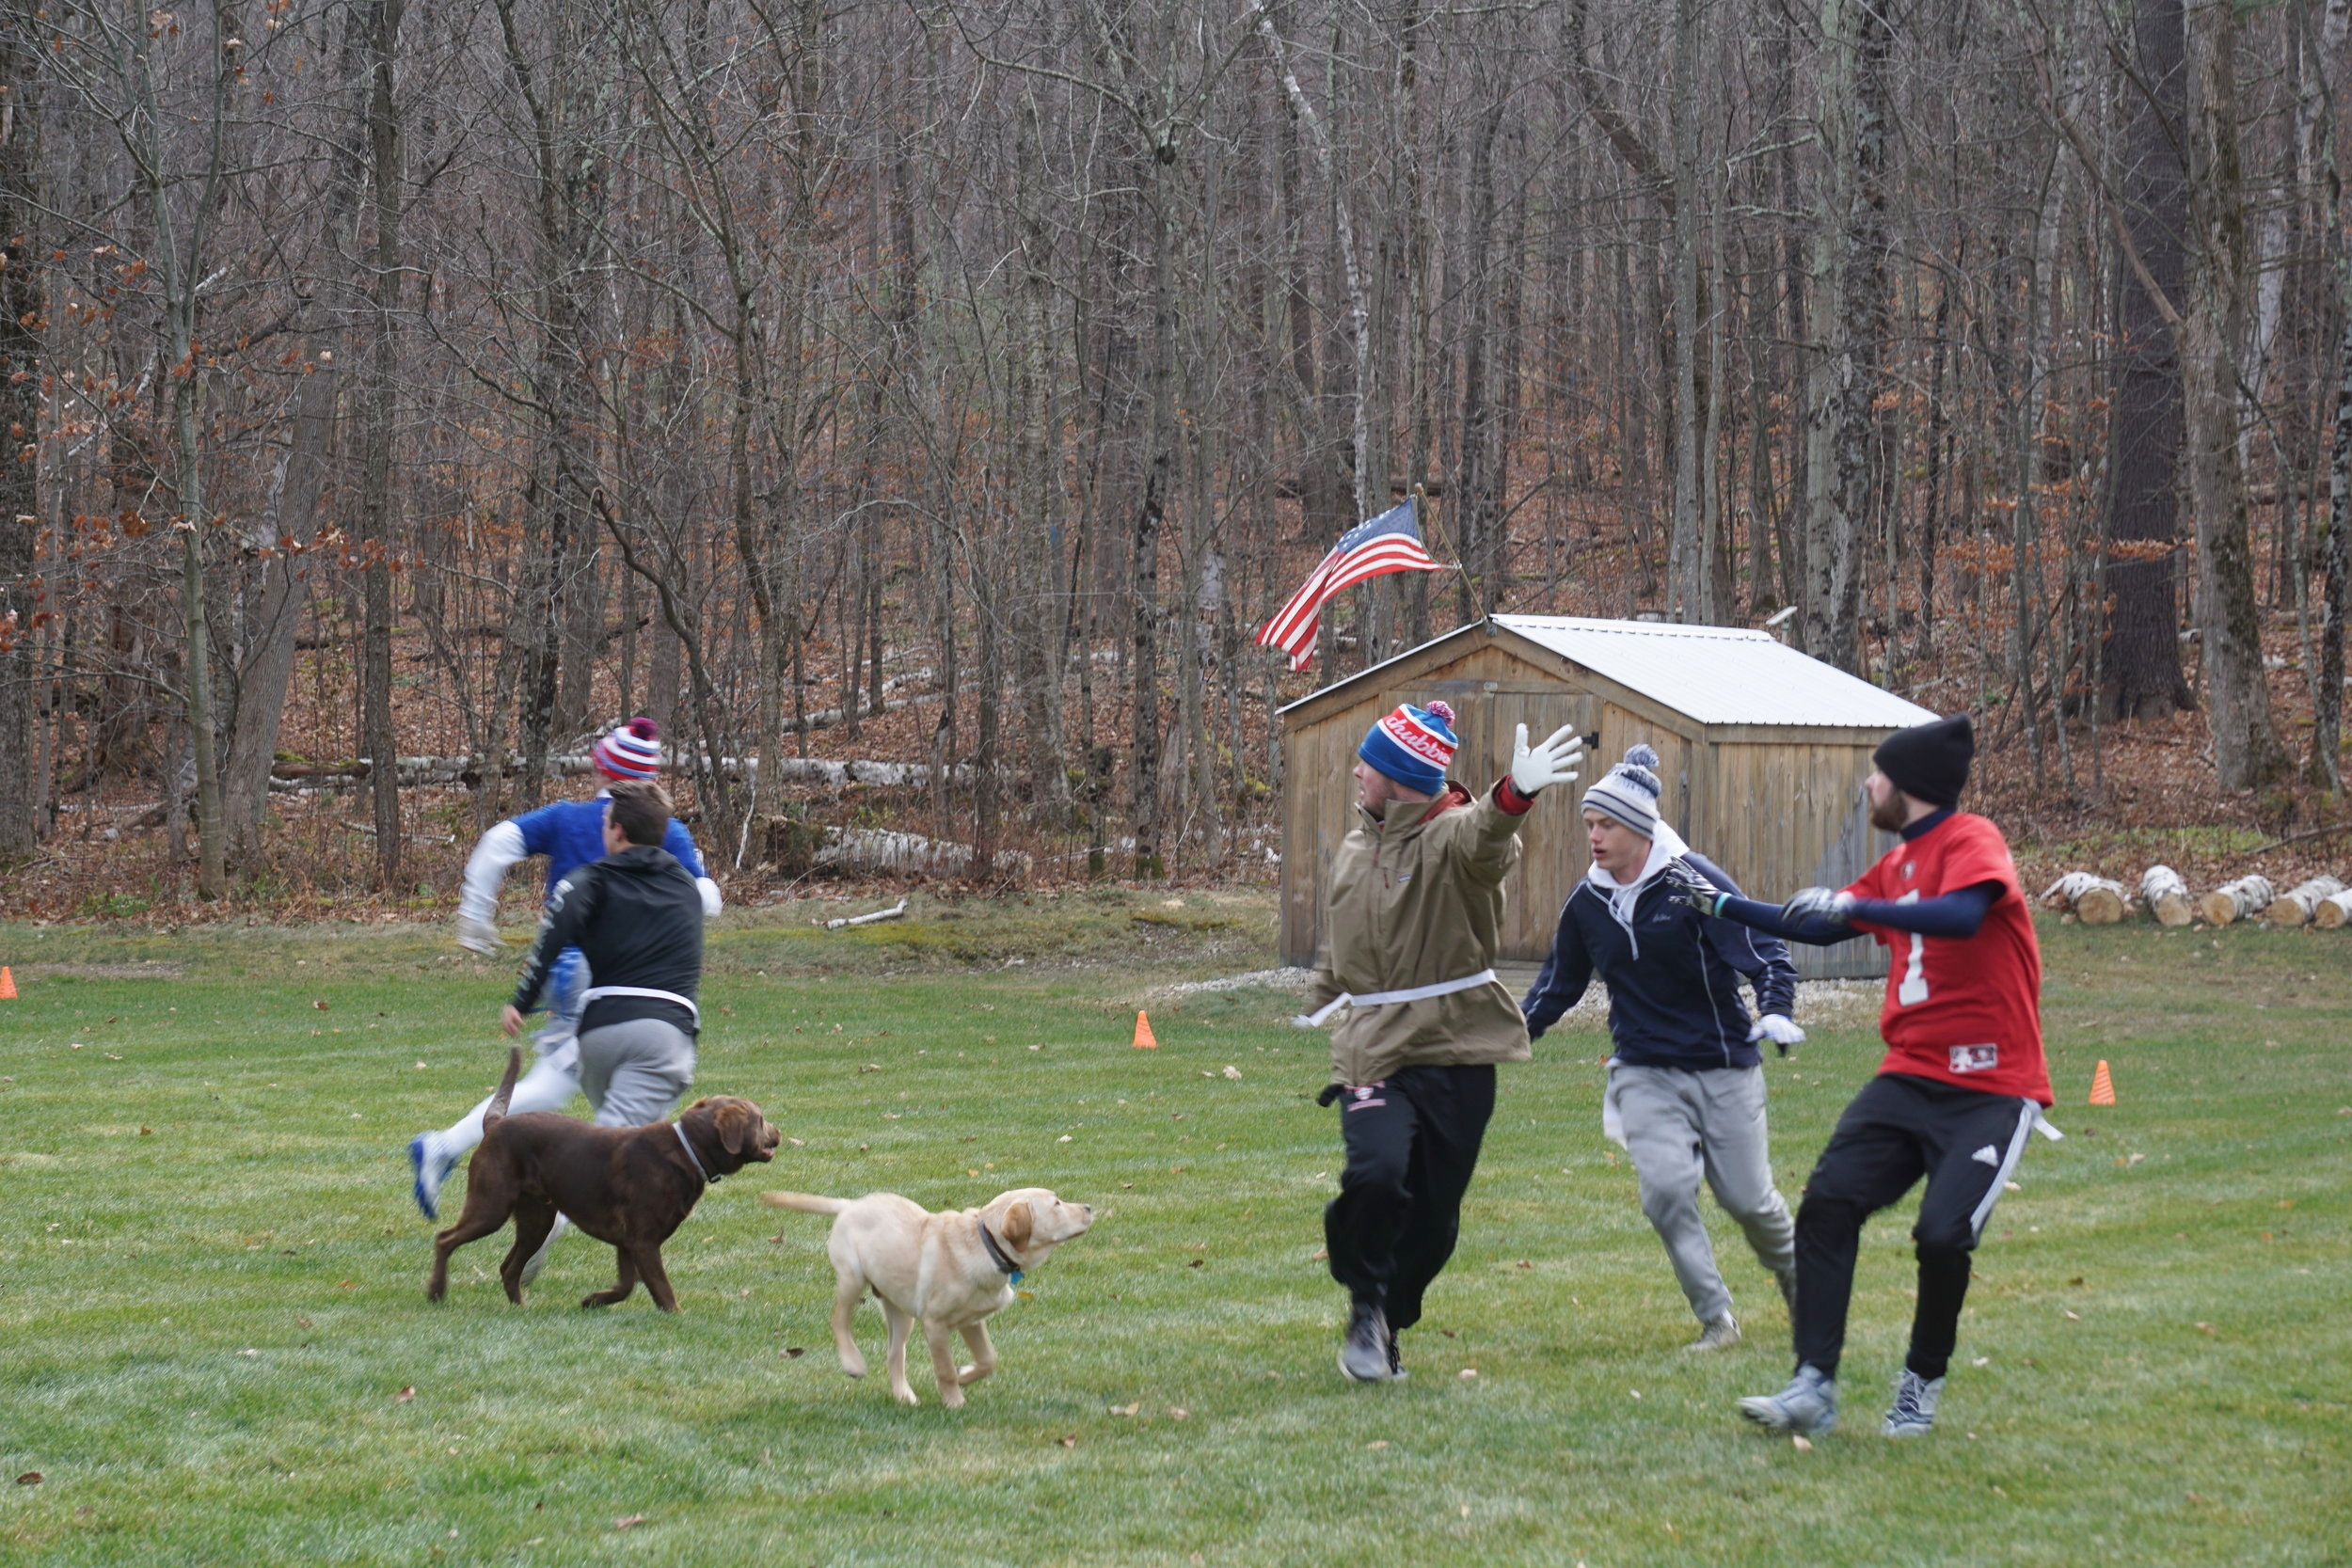 Some of the dogs like to play football.